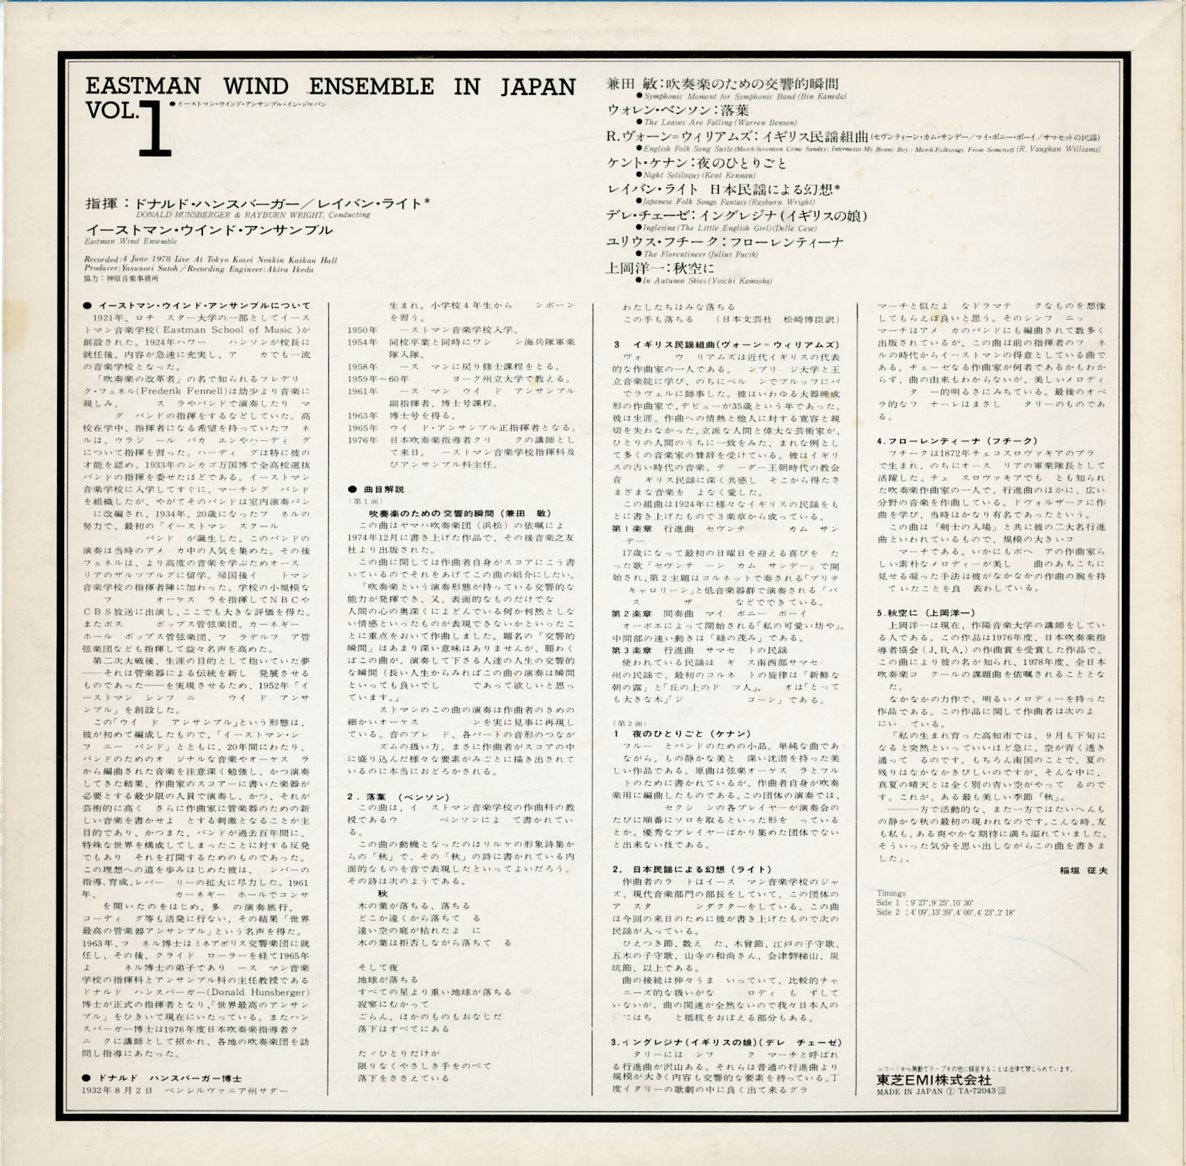 Back of album cover of the LP Eastman Wind Ensemble in Japan, Vol. I, released by Toshiba Records.